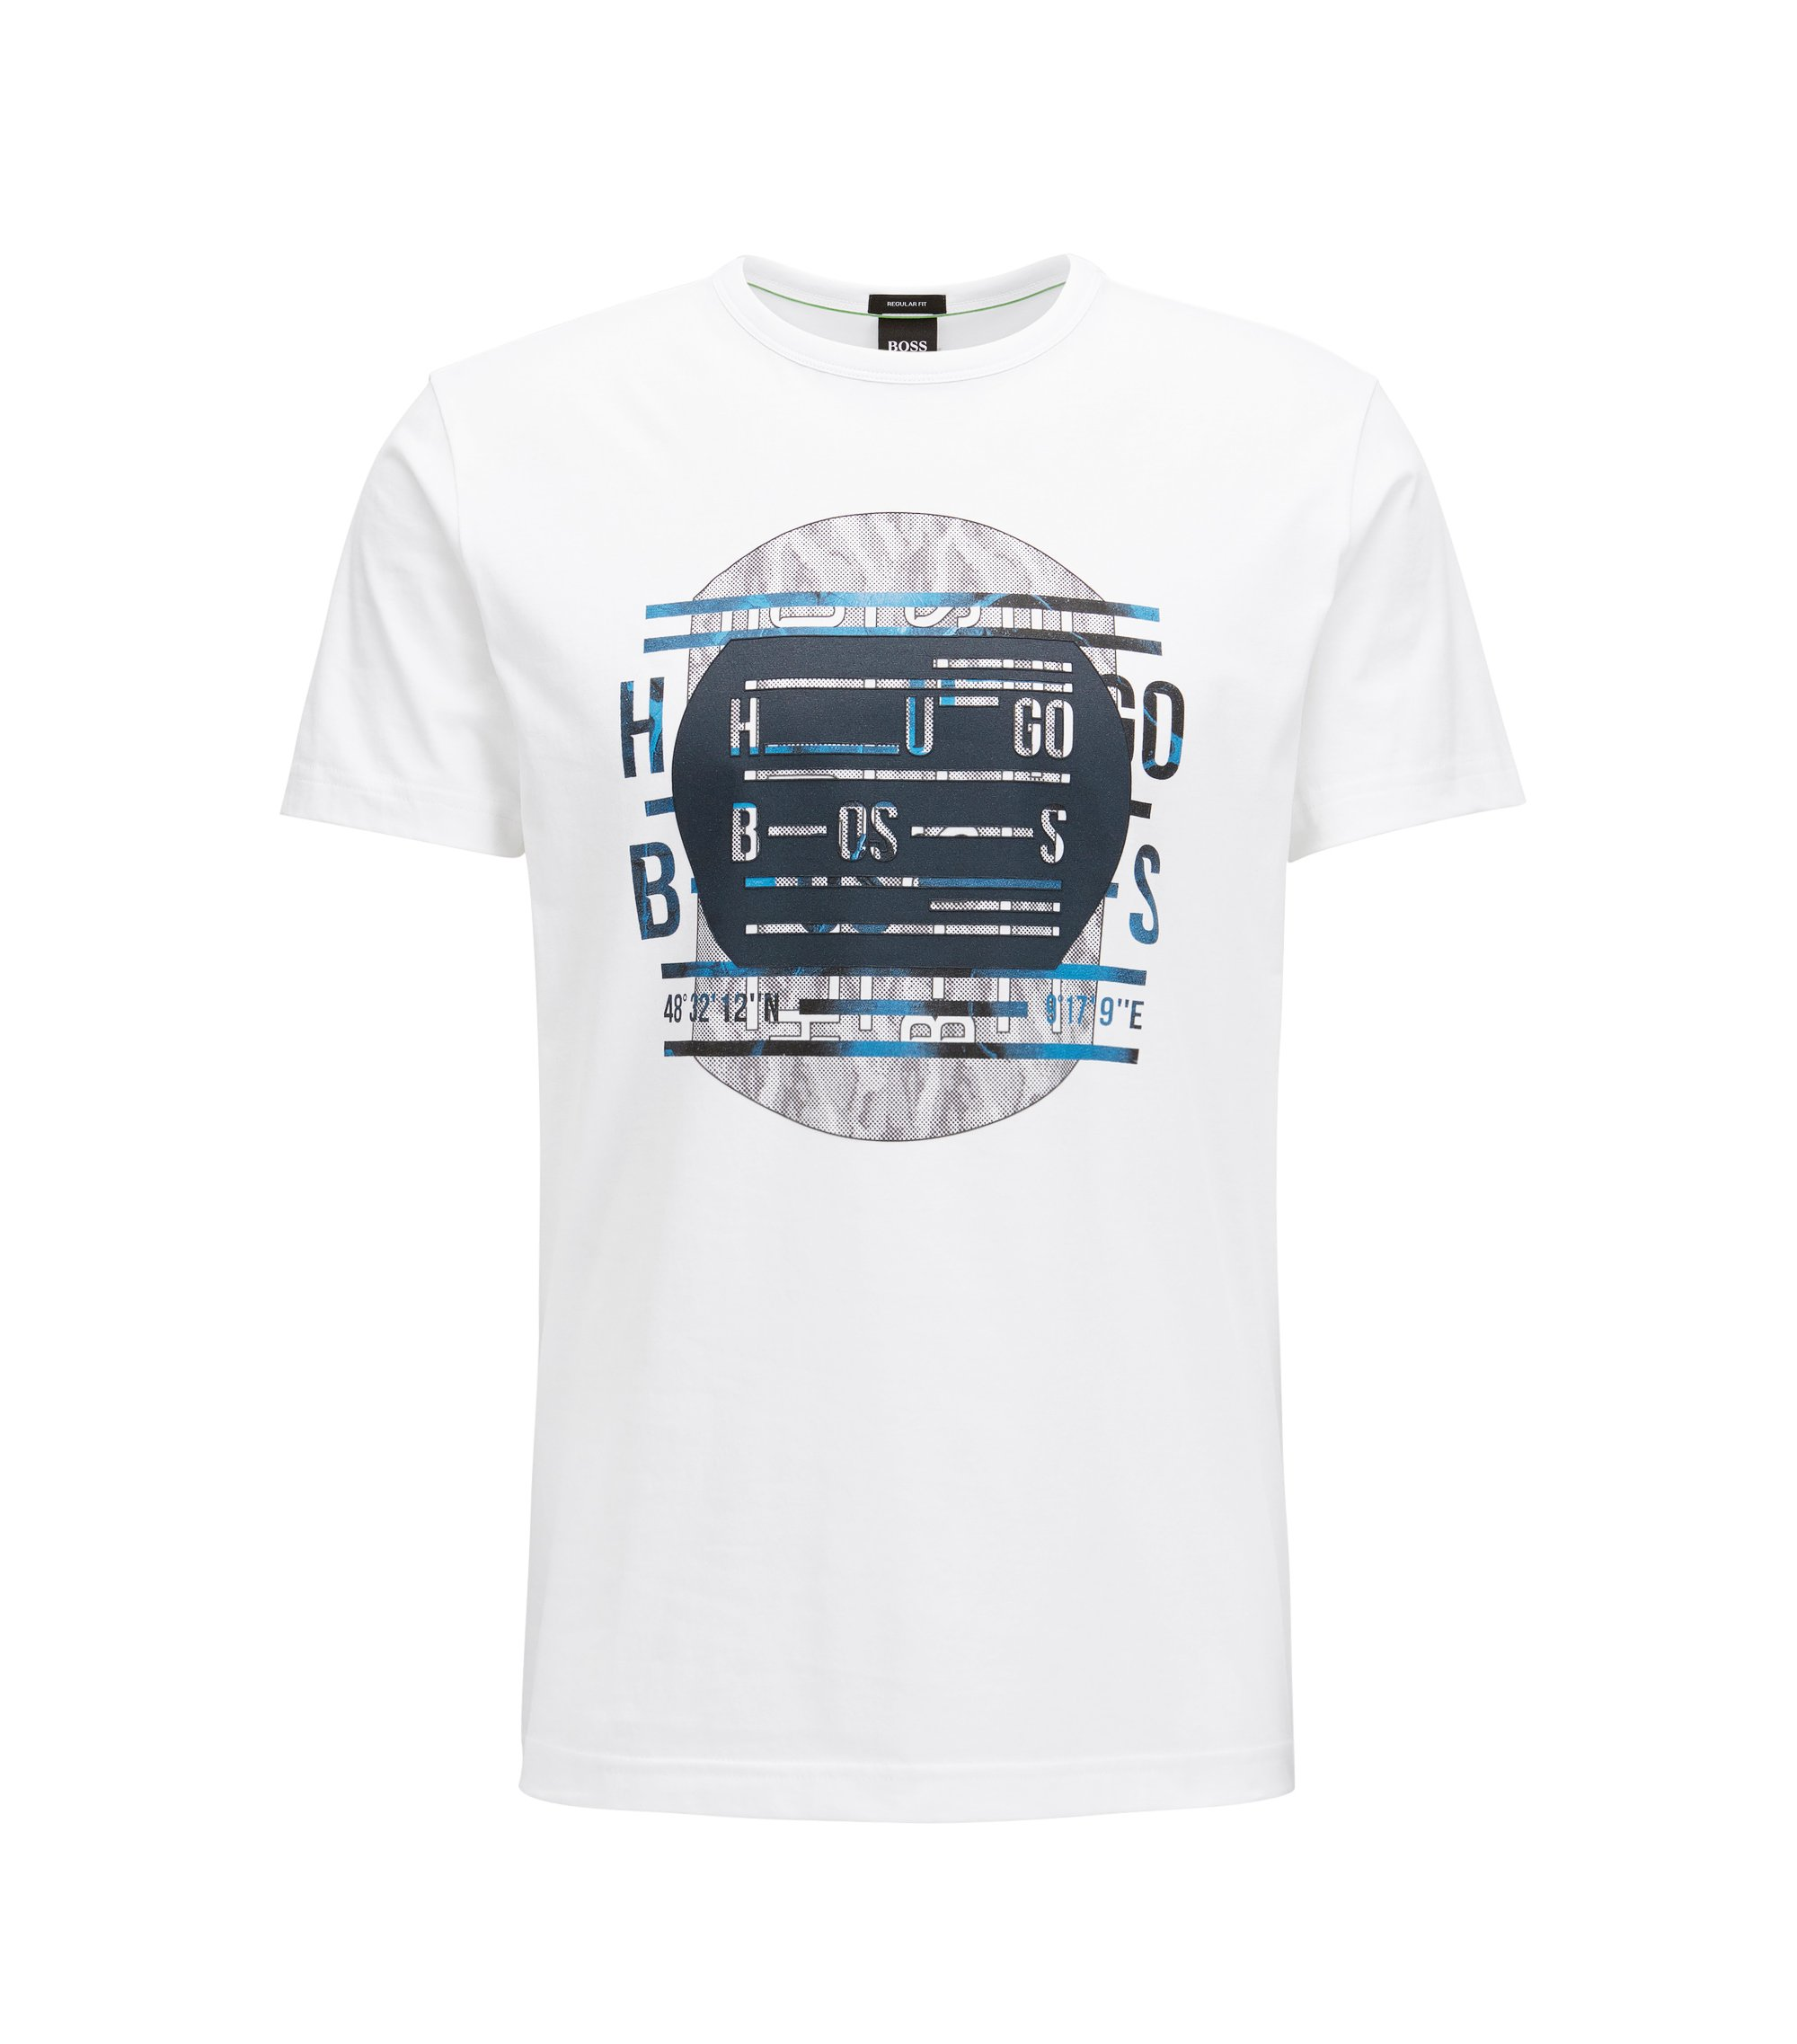 Cotton Graphic T-Shirt | Tee, White